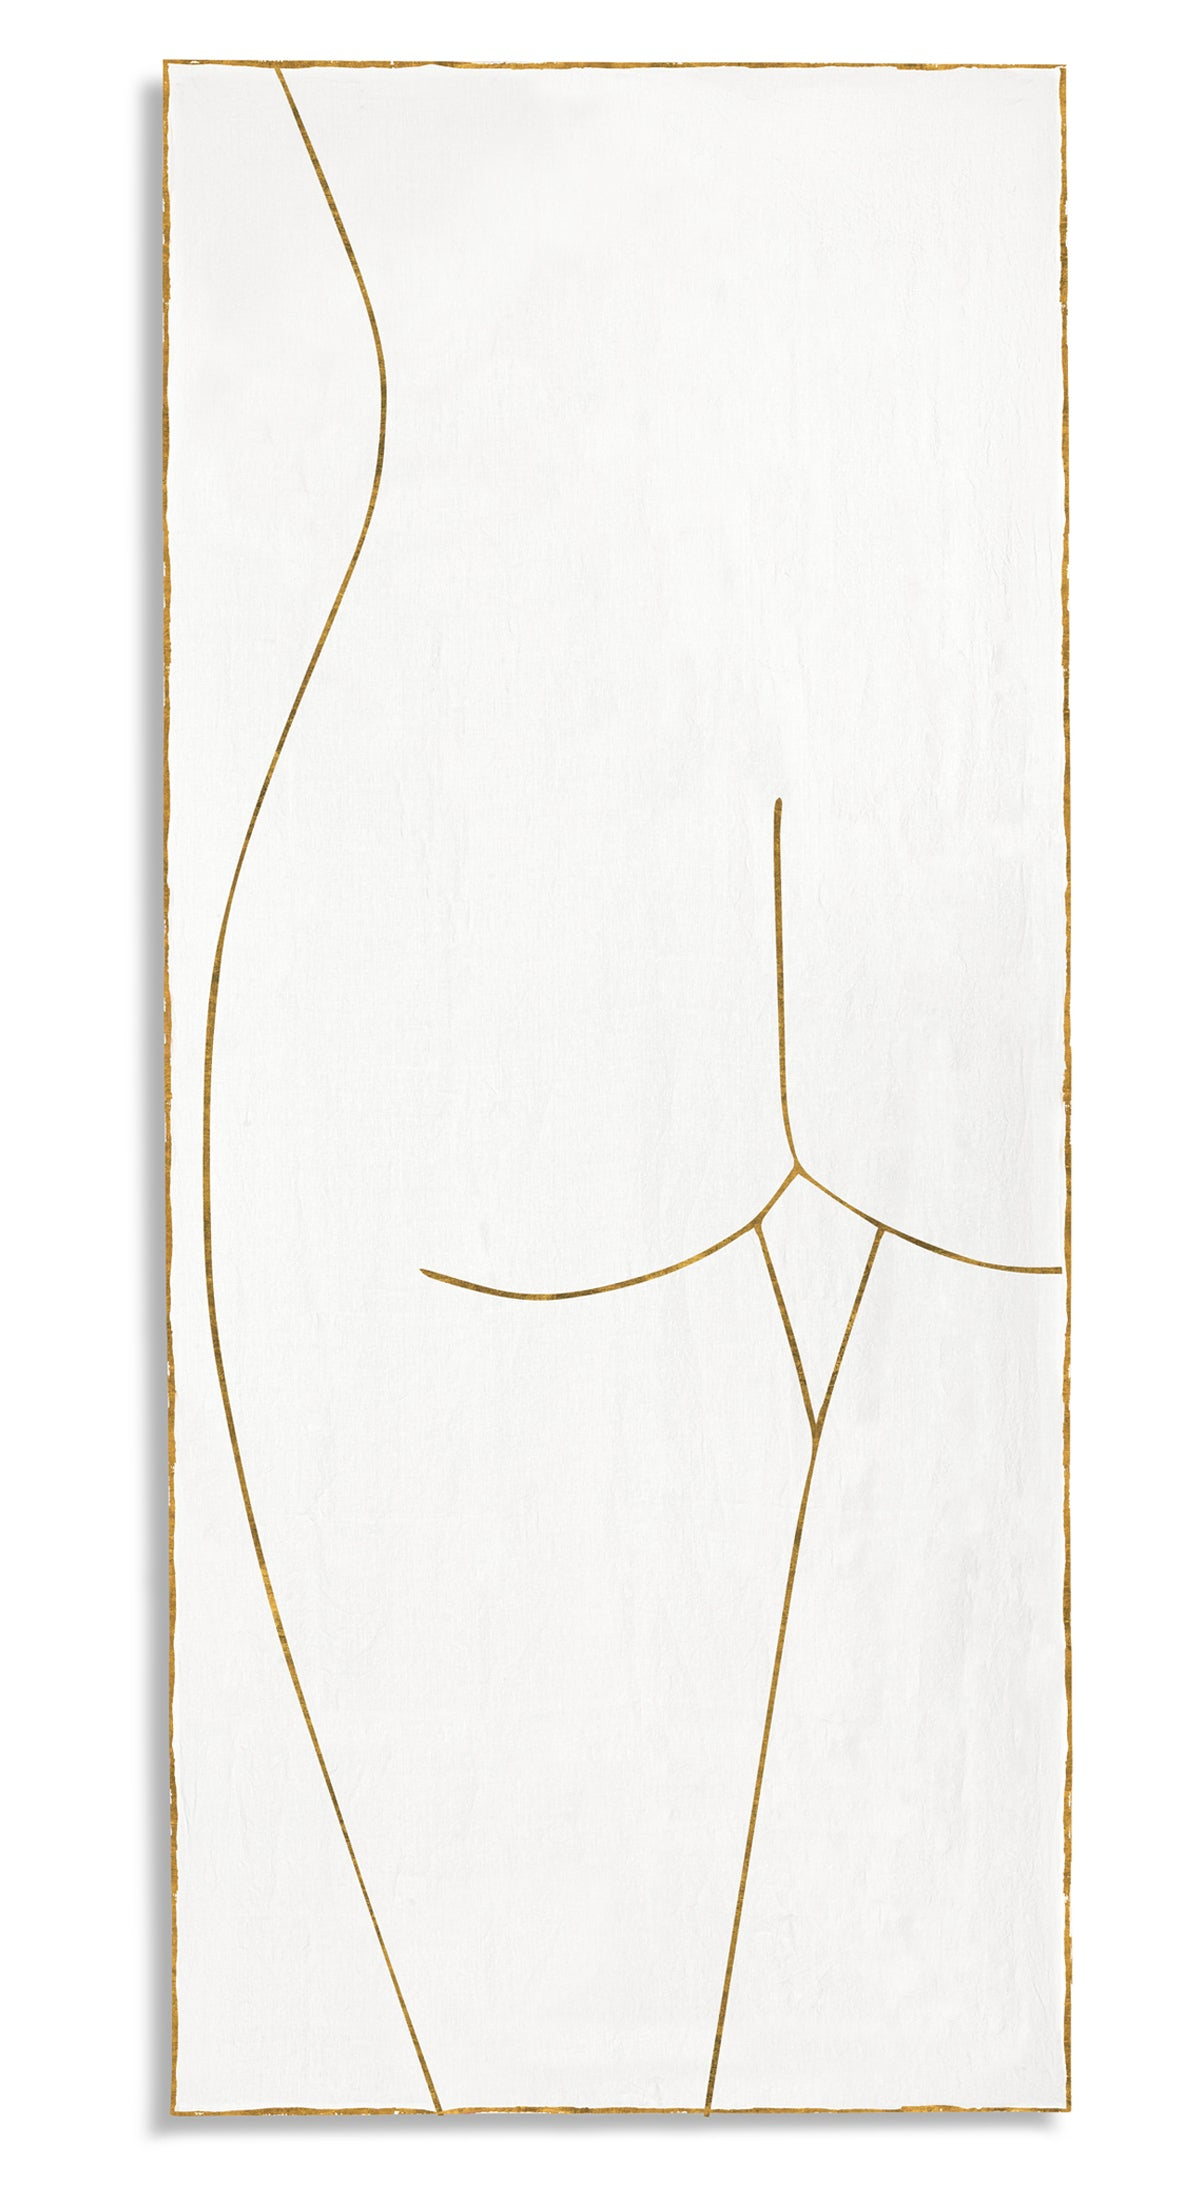 Nude Linen Tablecloth 'Female' in Gold